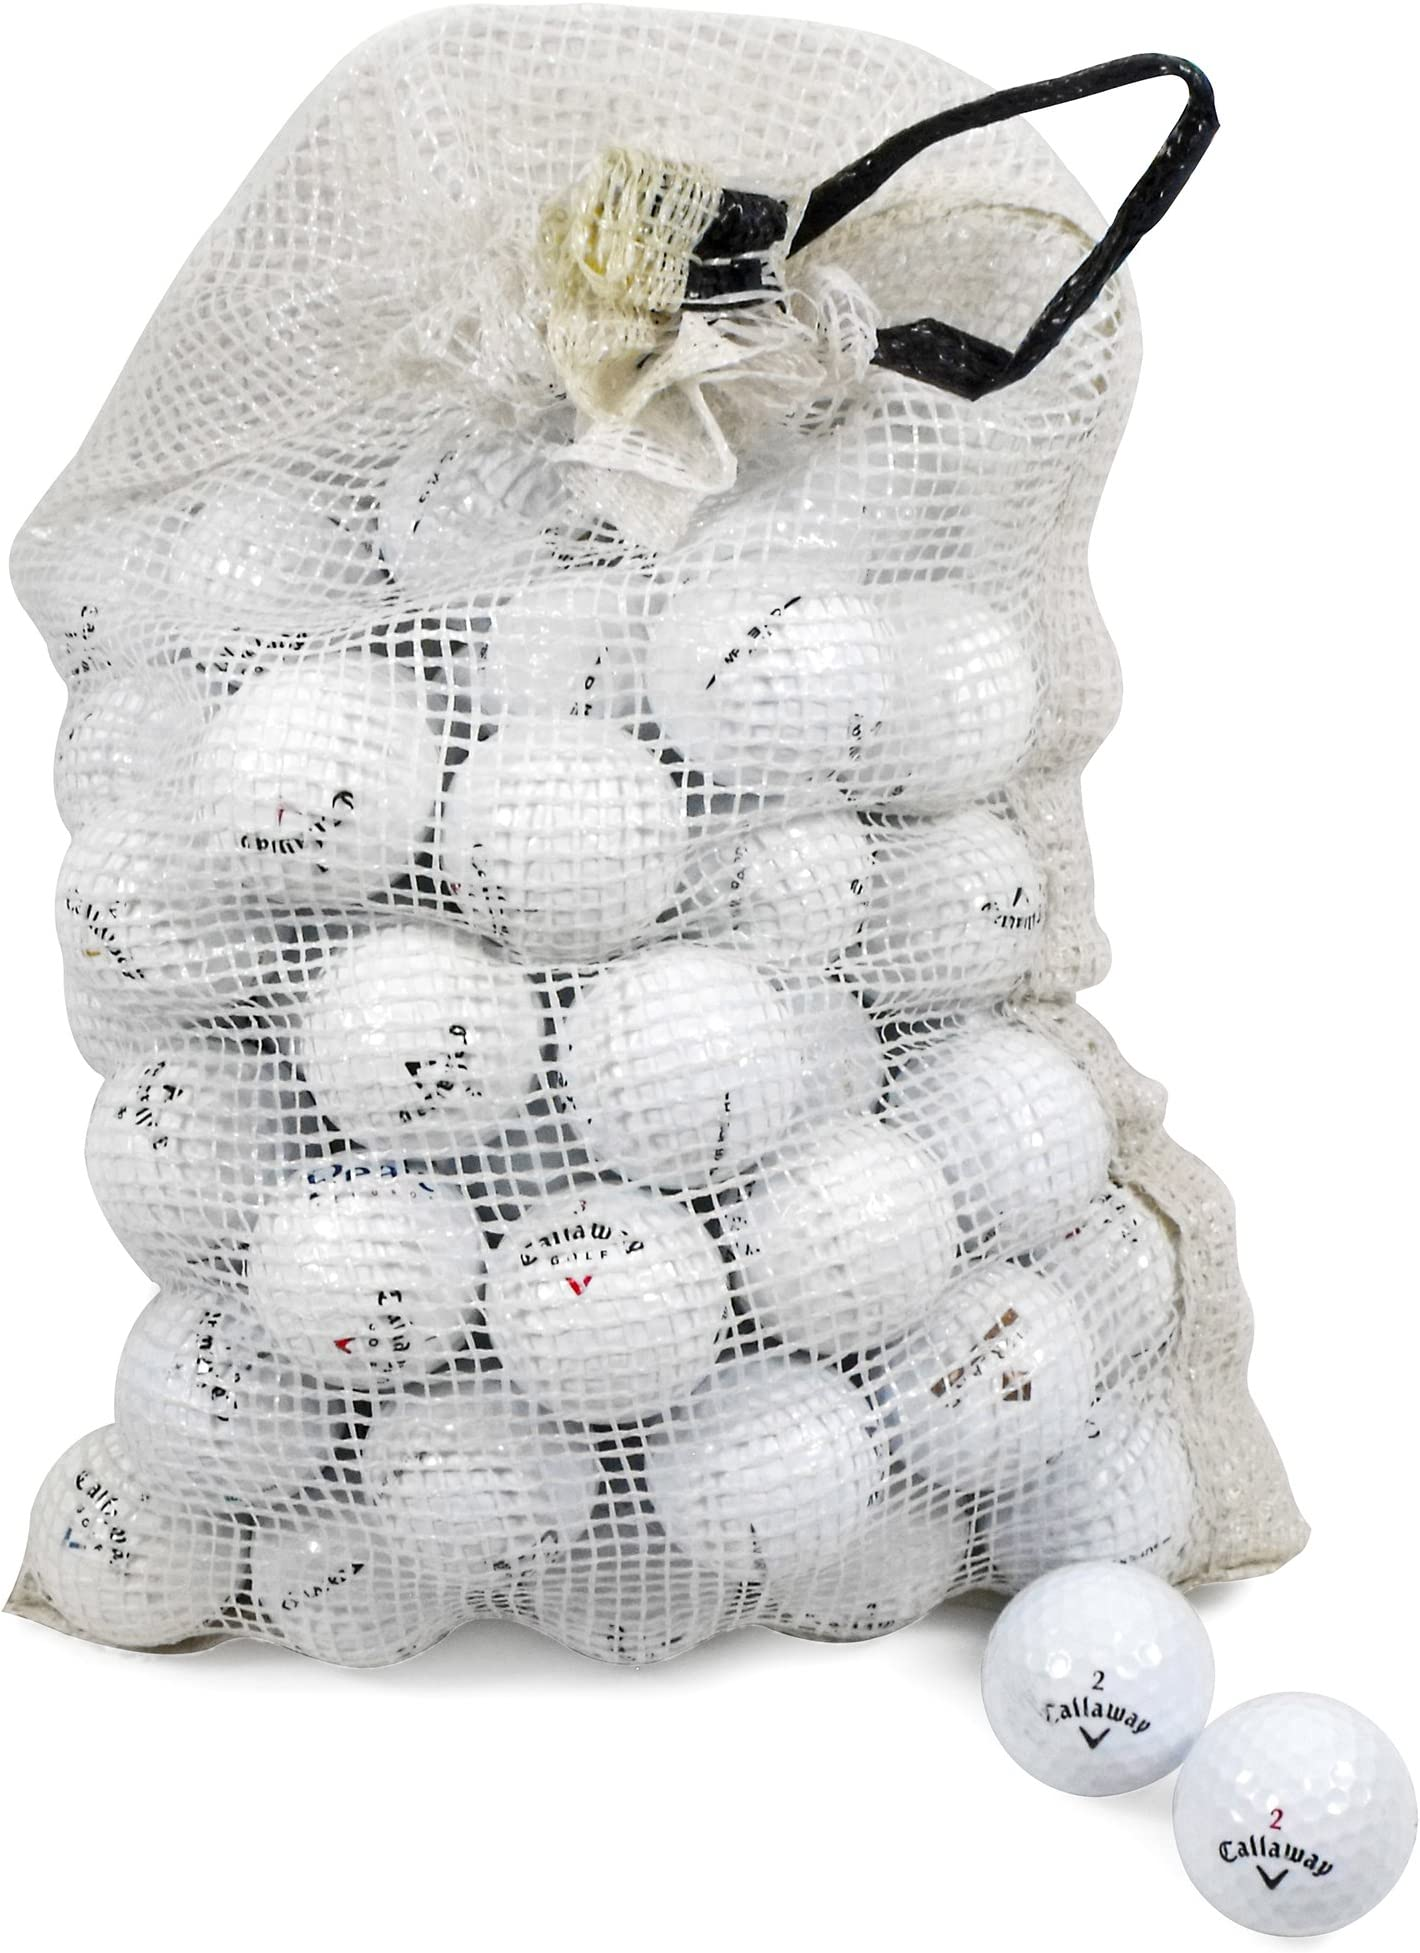 Callaway Assorted Models Recycled B/C Grade Golf Balls in Onion Mesh Bag (72-Piece), White